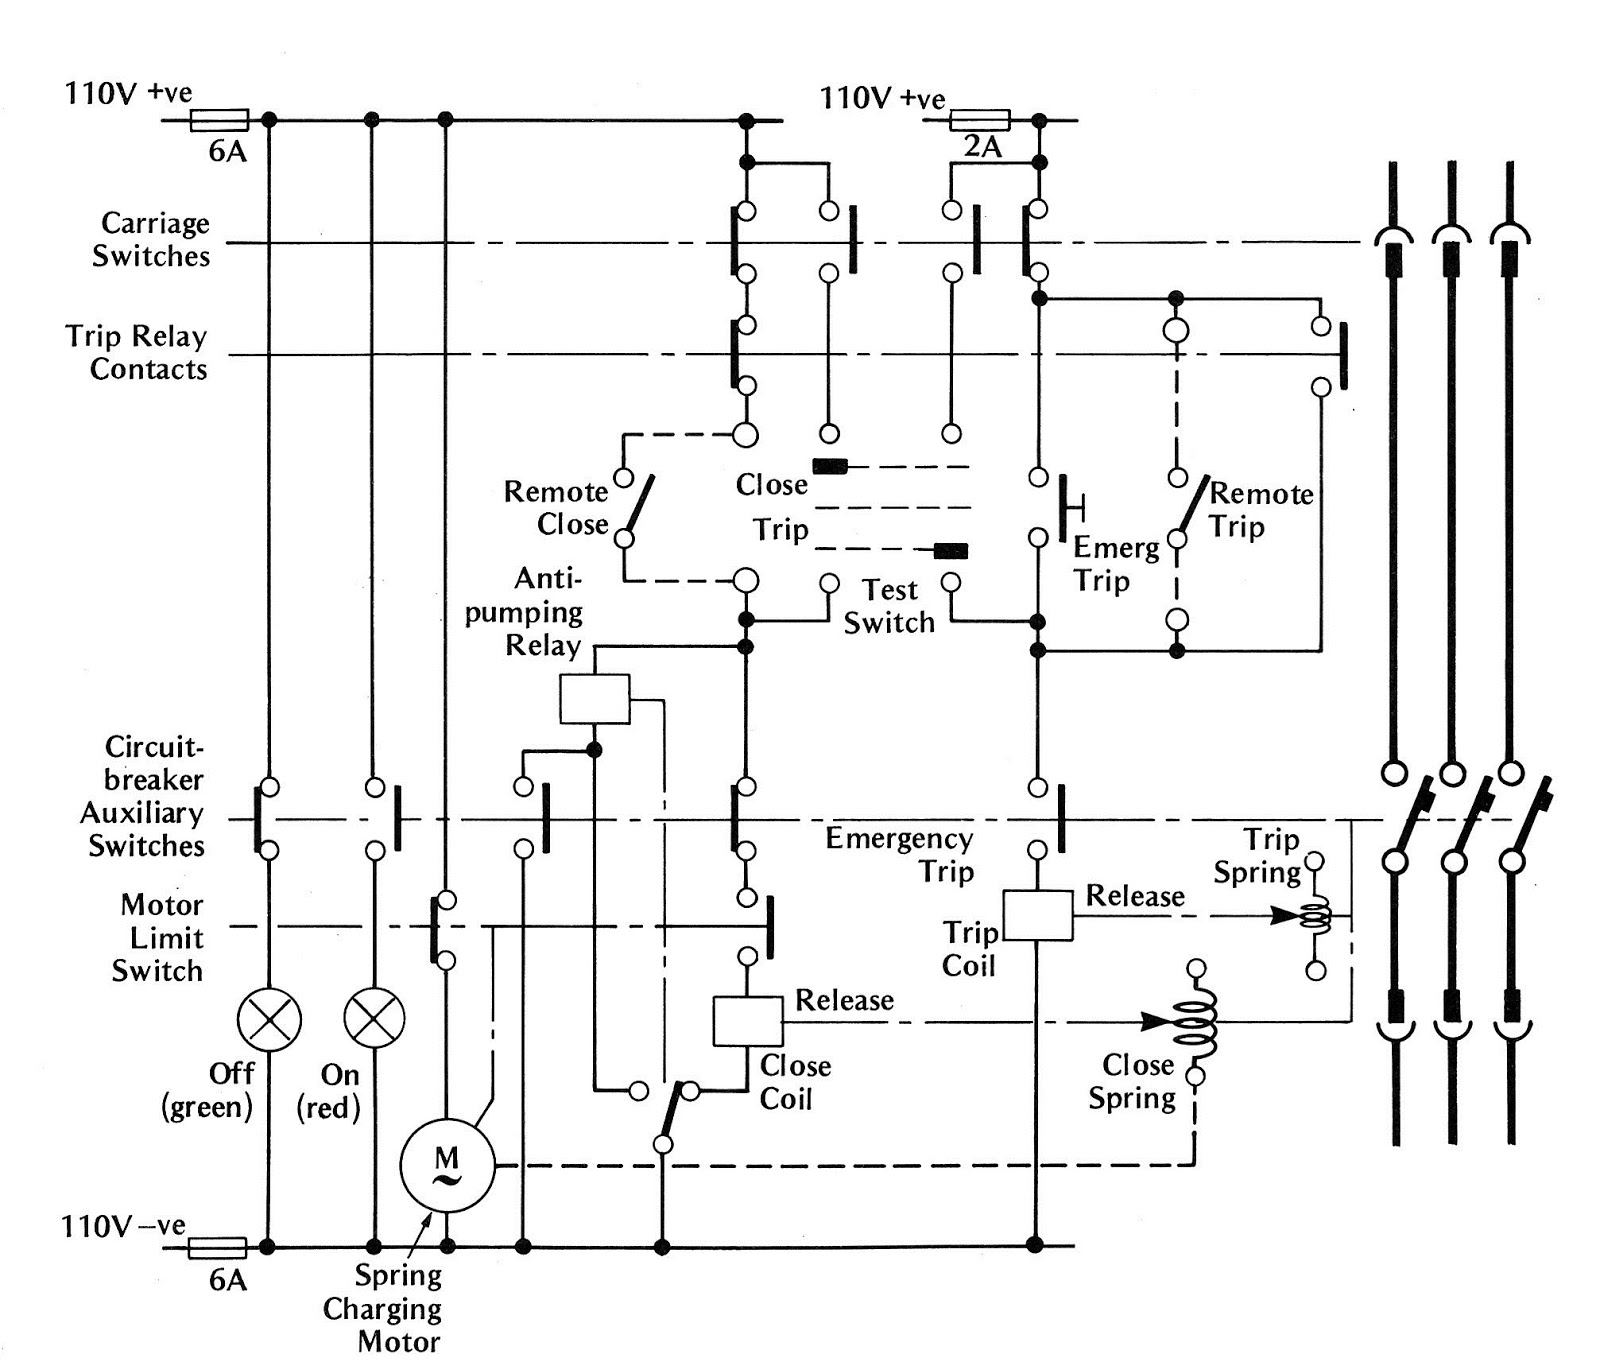 small resolution of electrical schematic diagram symbols electrical wiring schematic symbols circuit schematic symbols schematic symbols for circuit wiring